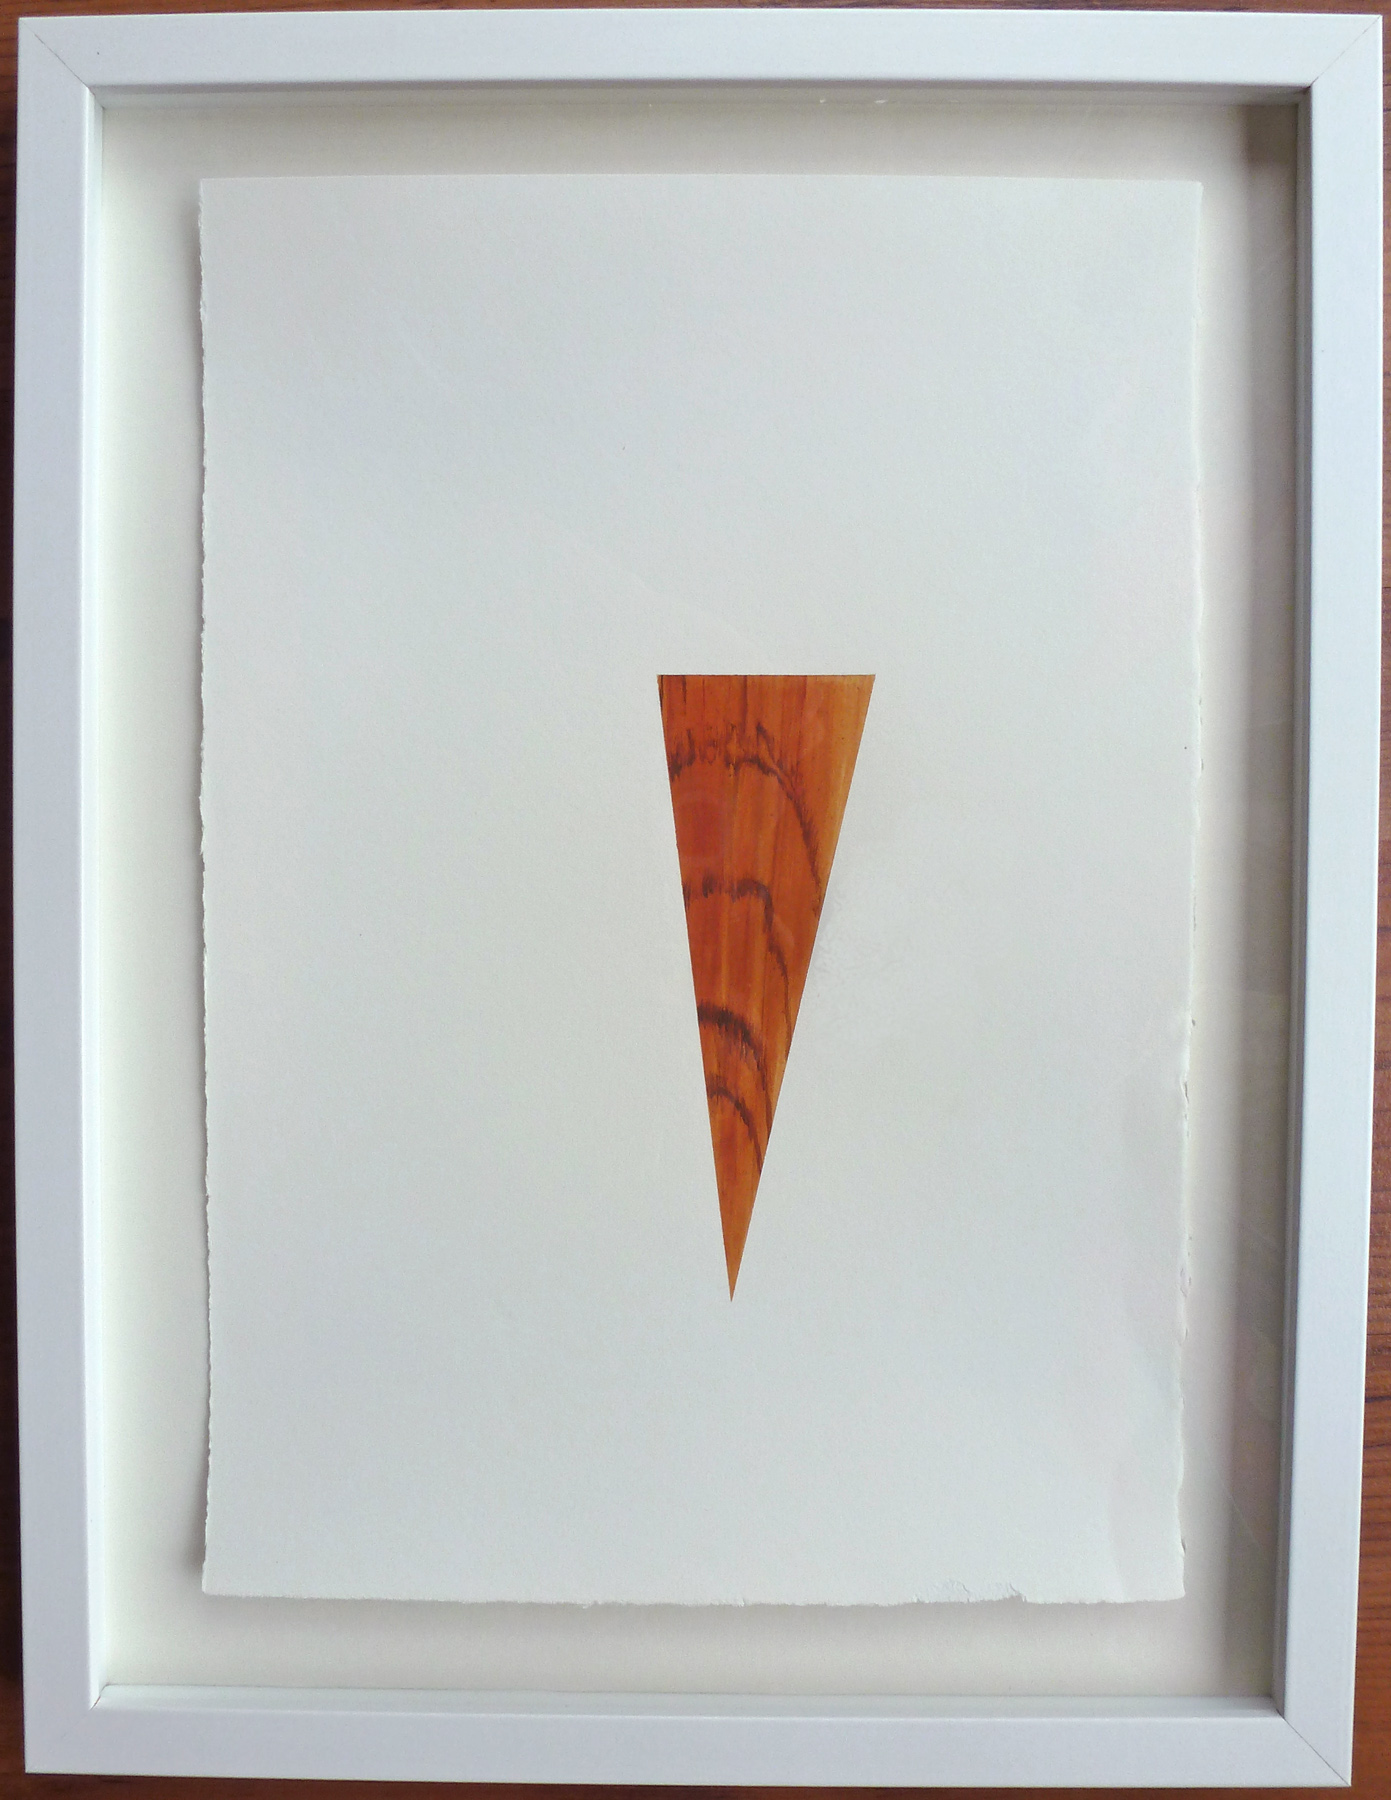 "Teak #2 , 2013, acrylic on paper, 12.5"" x 16.5"" (framed)"